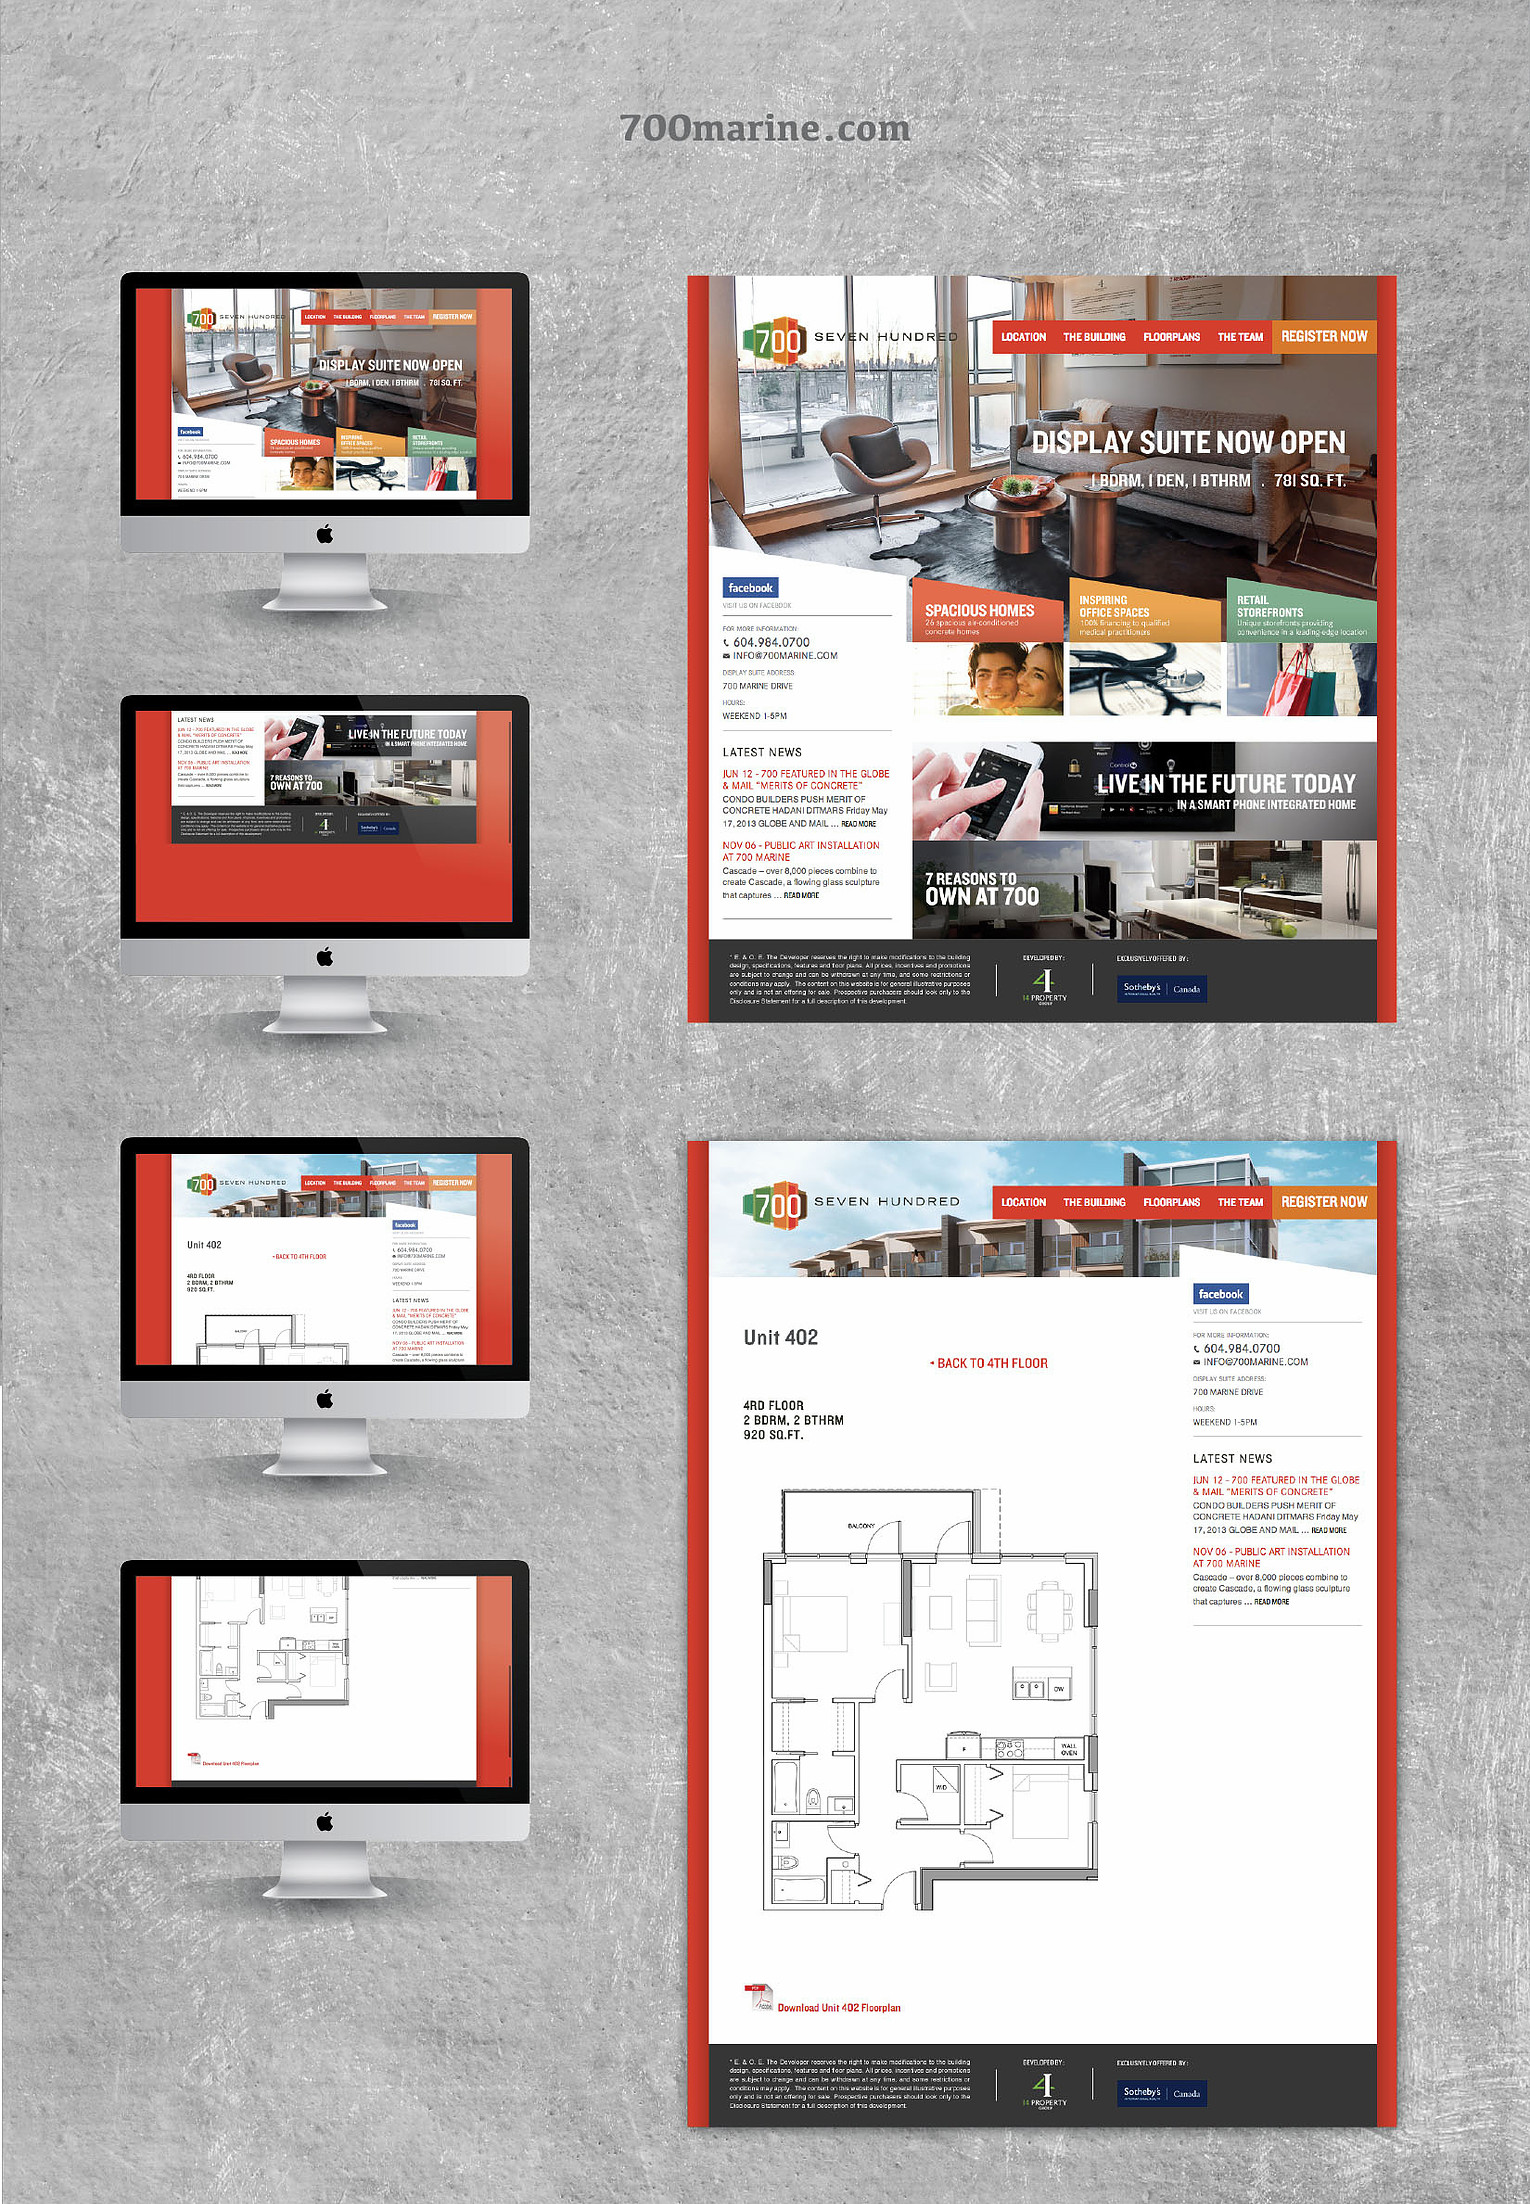 700 Marine Website Design